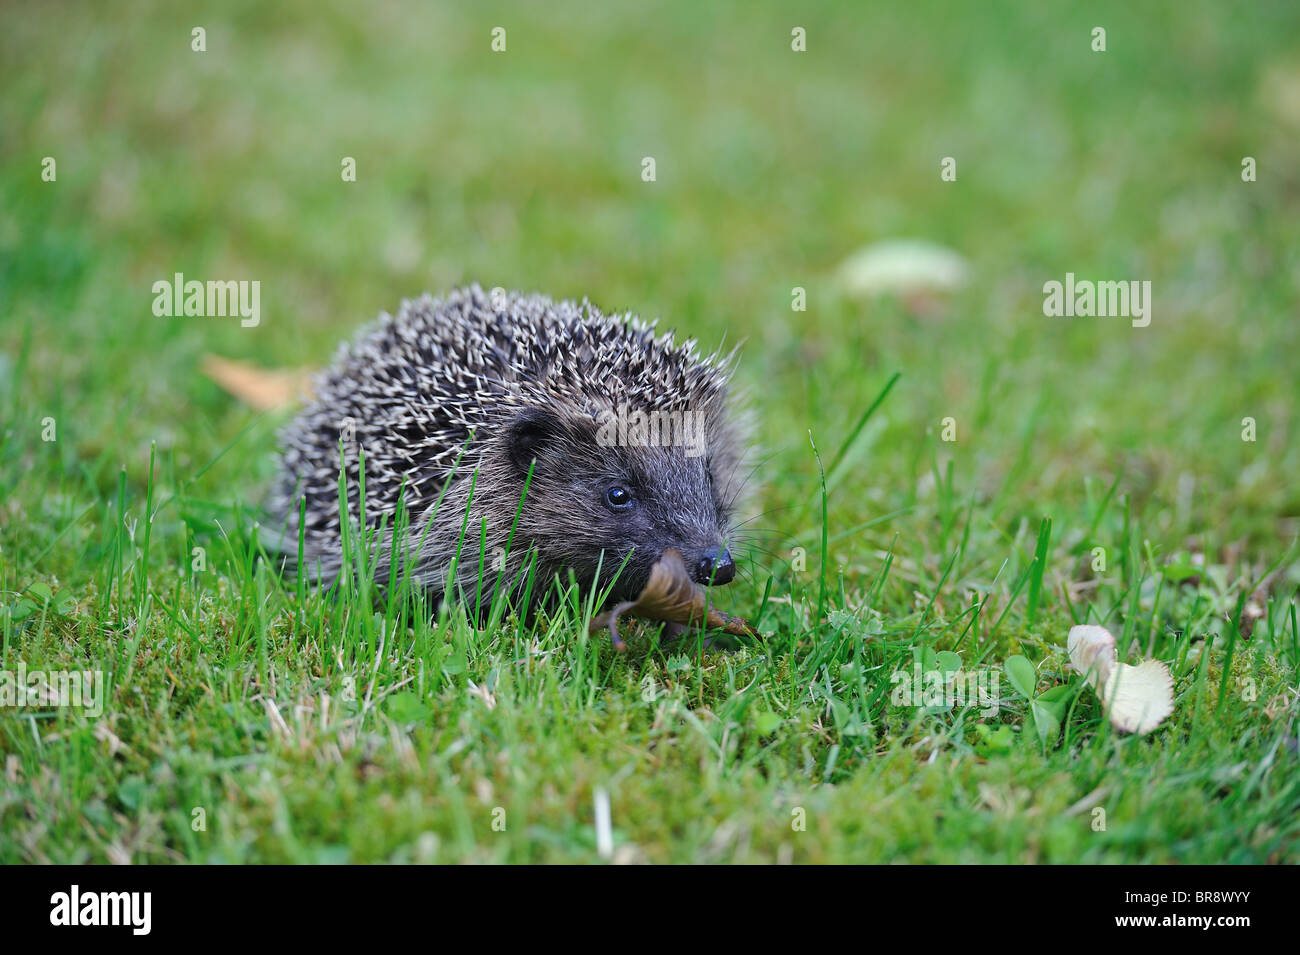 Western European hedgehog (Erinaceus europaeus) looking for food on the grass in a city garden - Brussels - Belgium - Stock Image